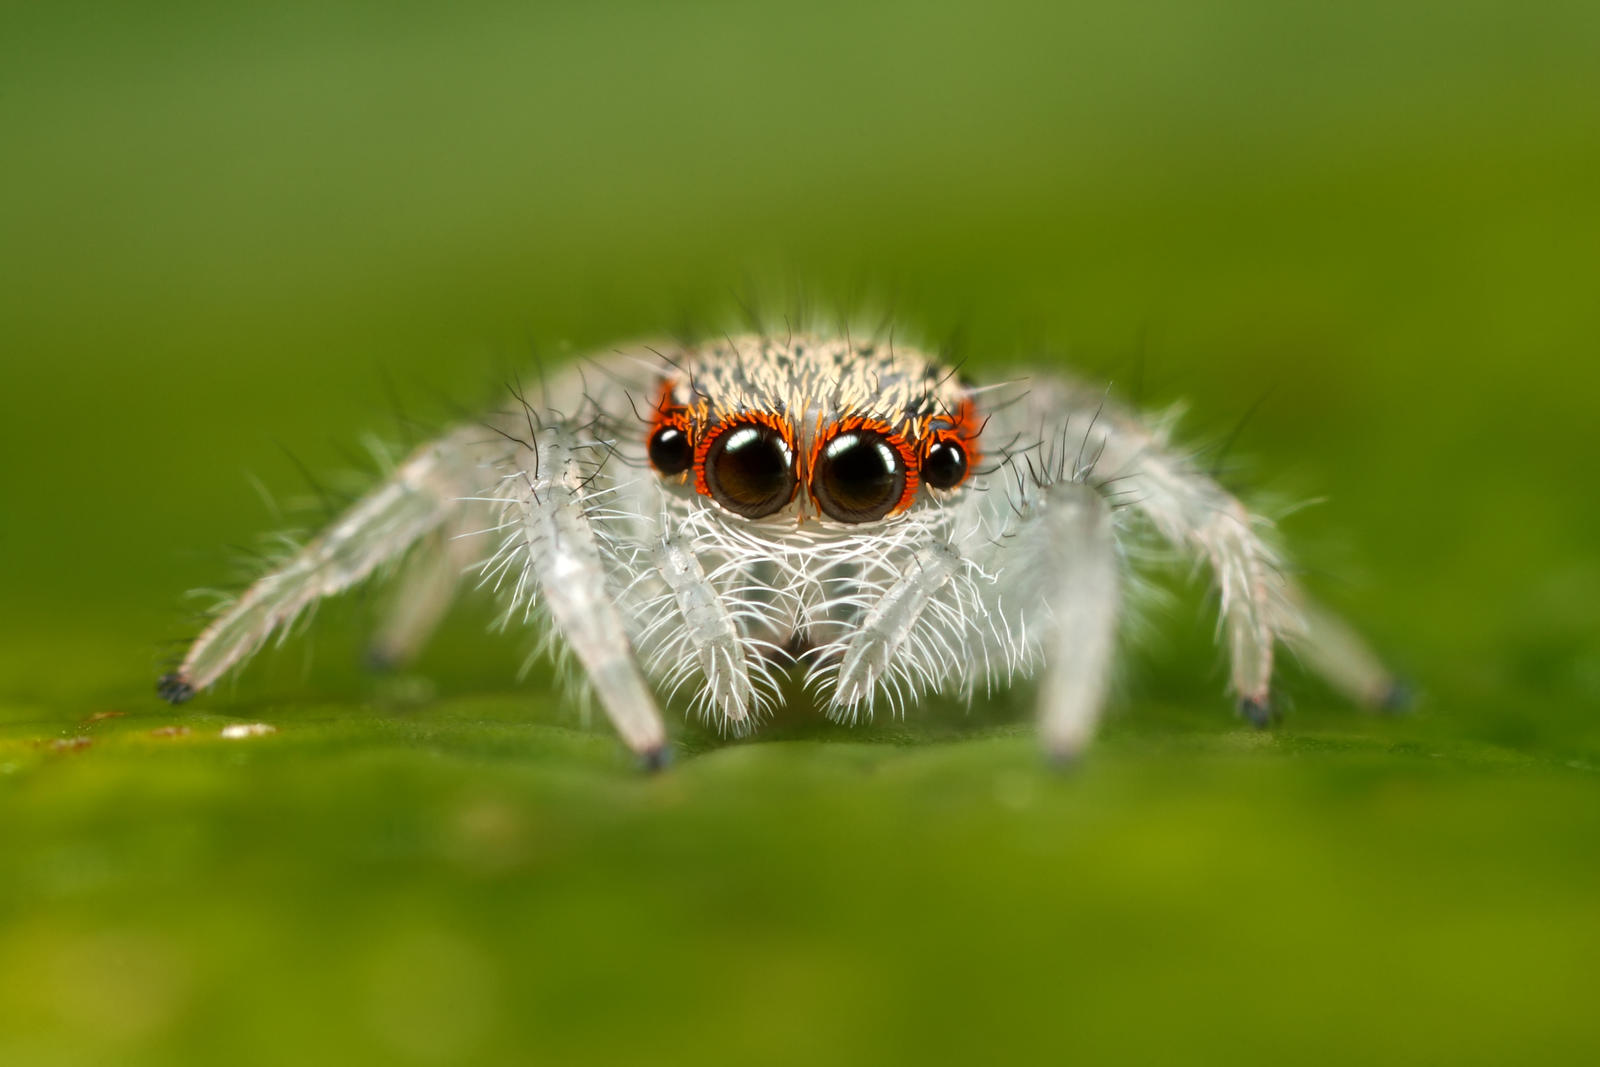 spiders cute jumping spider instar adorable jump facts wolf things cool fun random really funny why macrojunkie deviantart 2nd